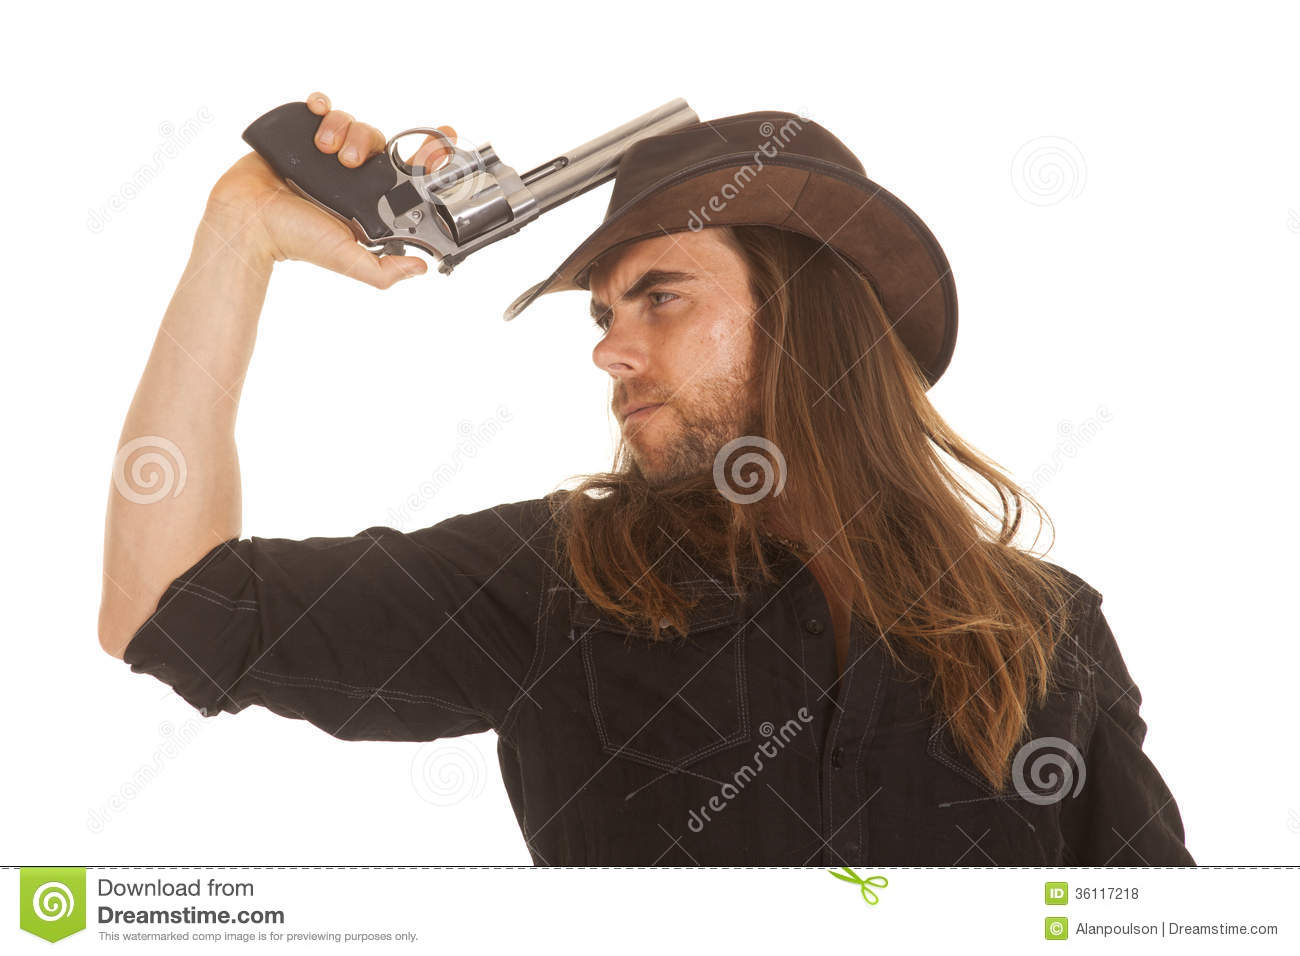 5b87604bee601 Cowboy Long Hair Hold Pistol By Hat Stock Photo - Image of middle ...